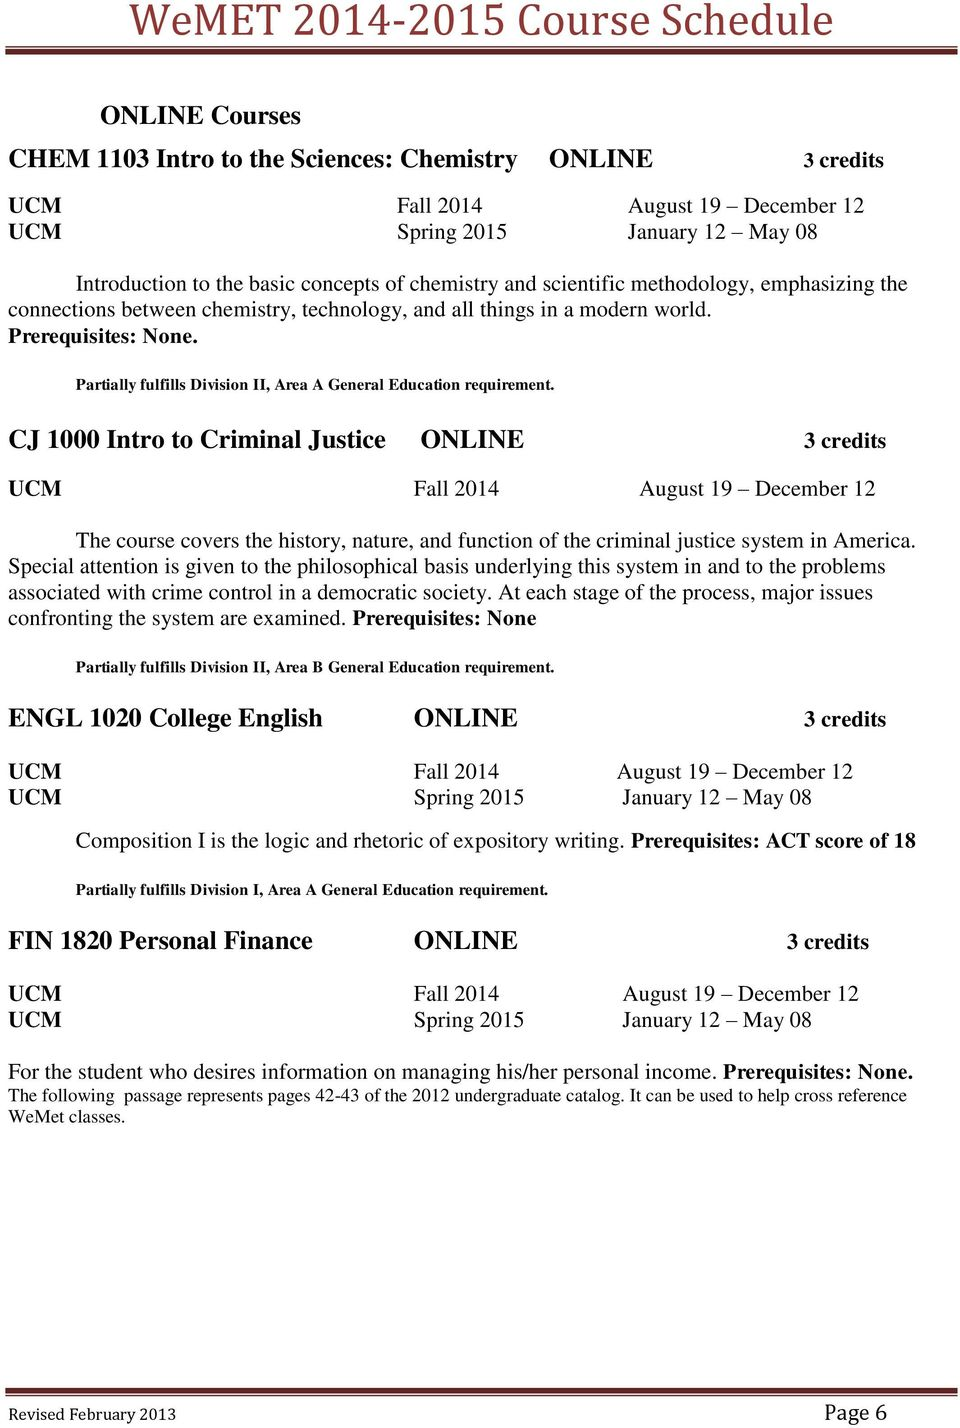 CJ 1000 Intro to Criminal Justice ONLINE 3 credits The course covers the history, nature, and function of the criminal justice system in America.